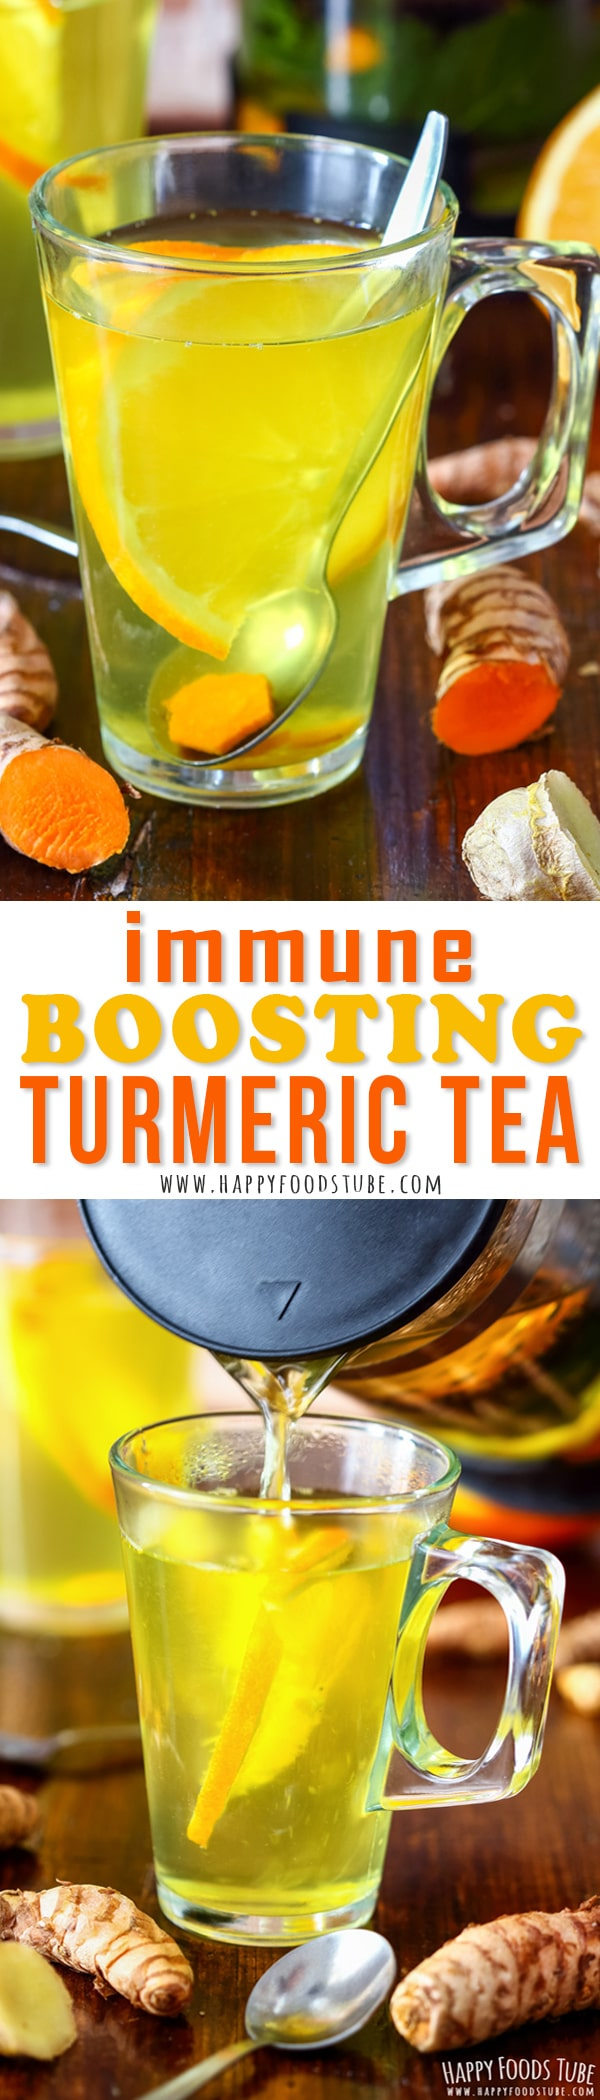 Fight off the viruses with this Immune Boosting Turmeric Tea. Freshly brewed cup of turmeric tea will help you stay healthy during cold winter months. #turmeric #turmerictea #recipe #healthy #weightloss #flu #benefits #detox #cold #howtomake #antiinflammatory #glowingskin #fresh #tea #drink